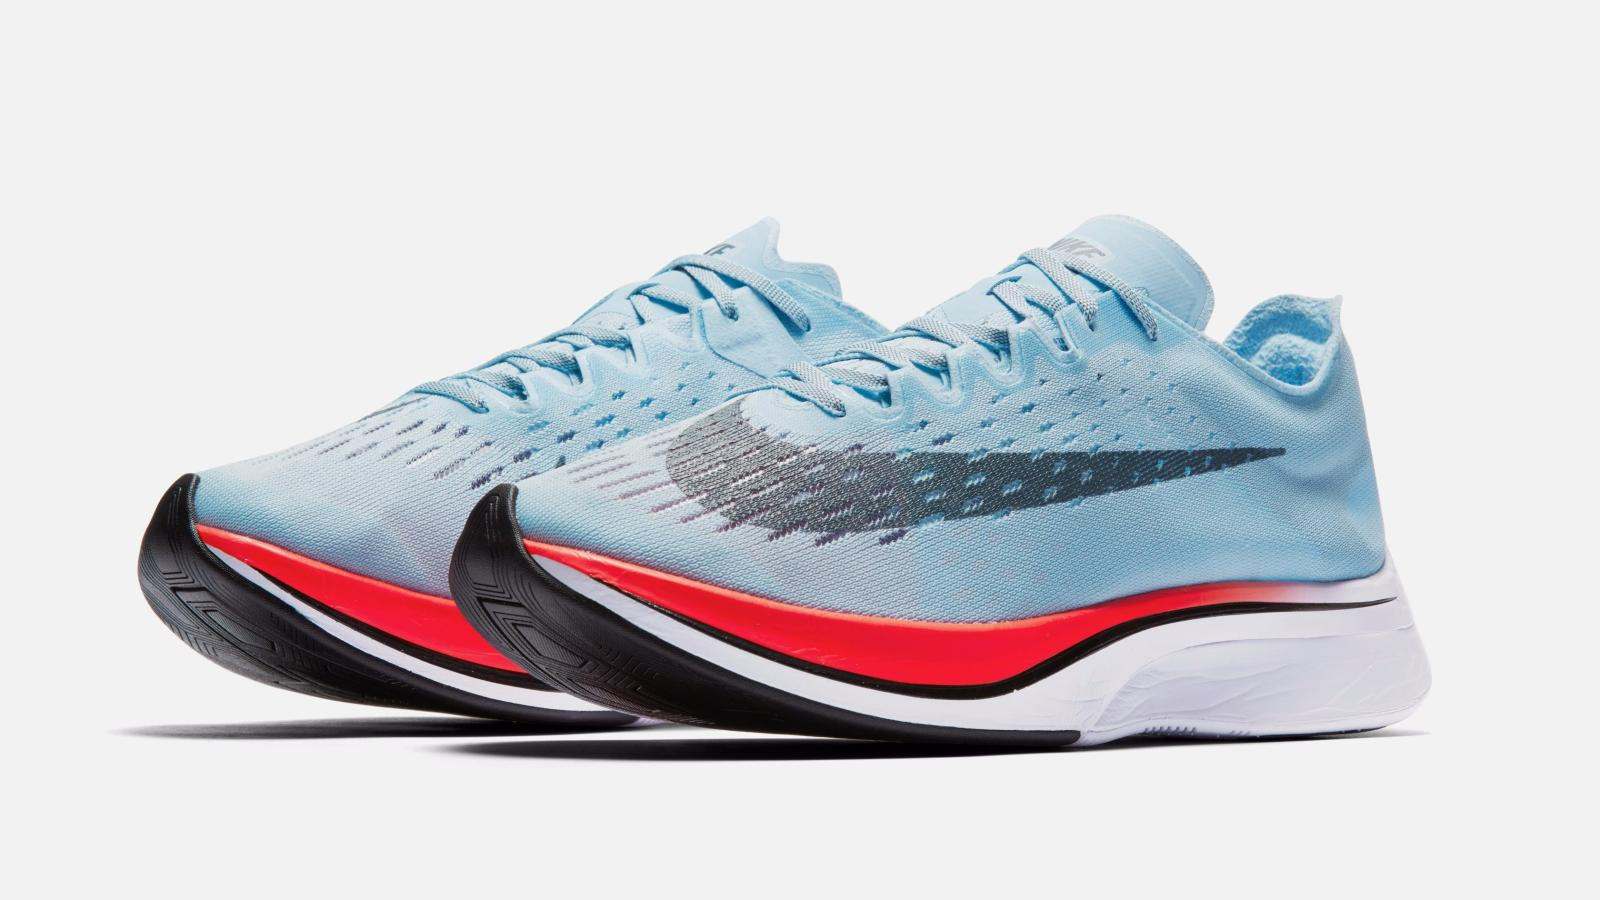 Nike's Zoom Vaporfly 4% makes you a faster runner, study